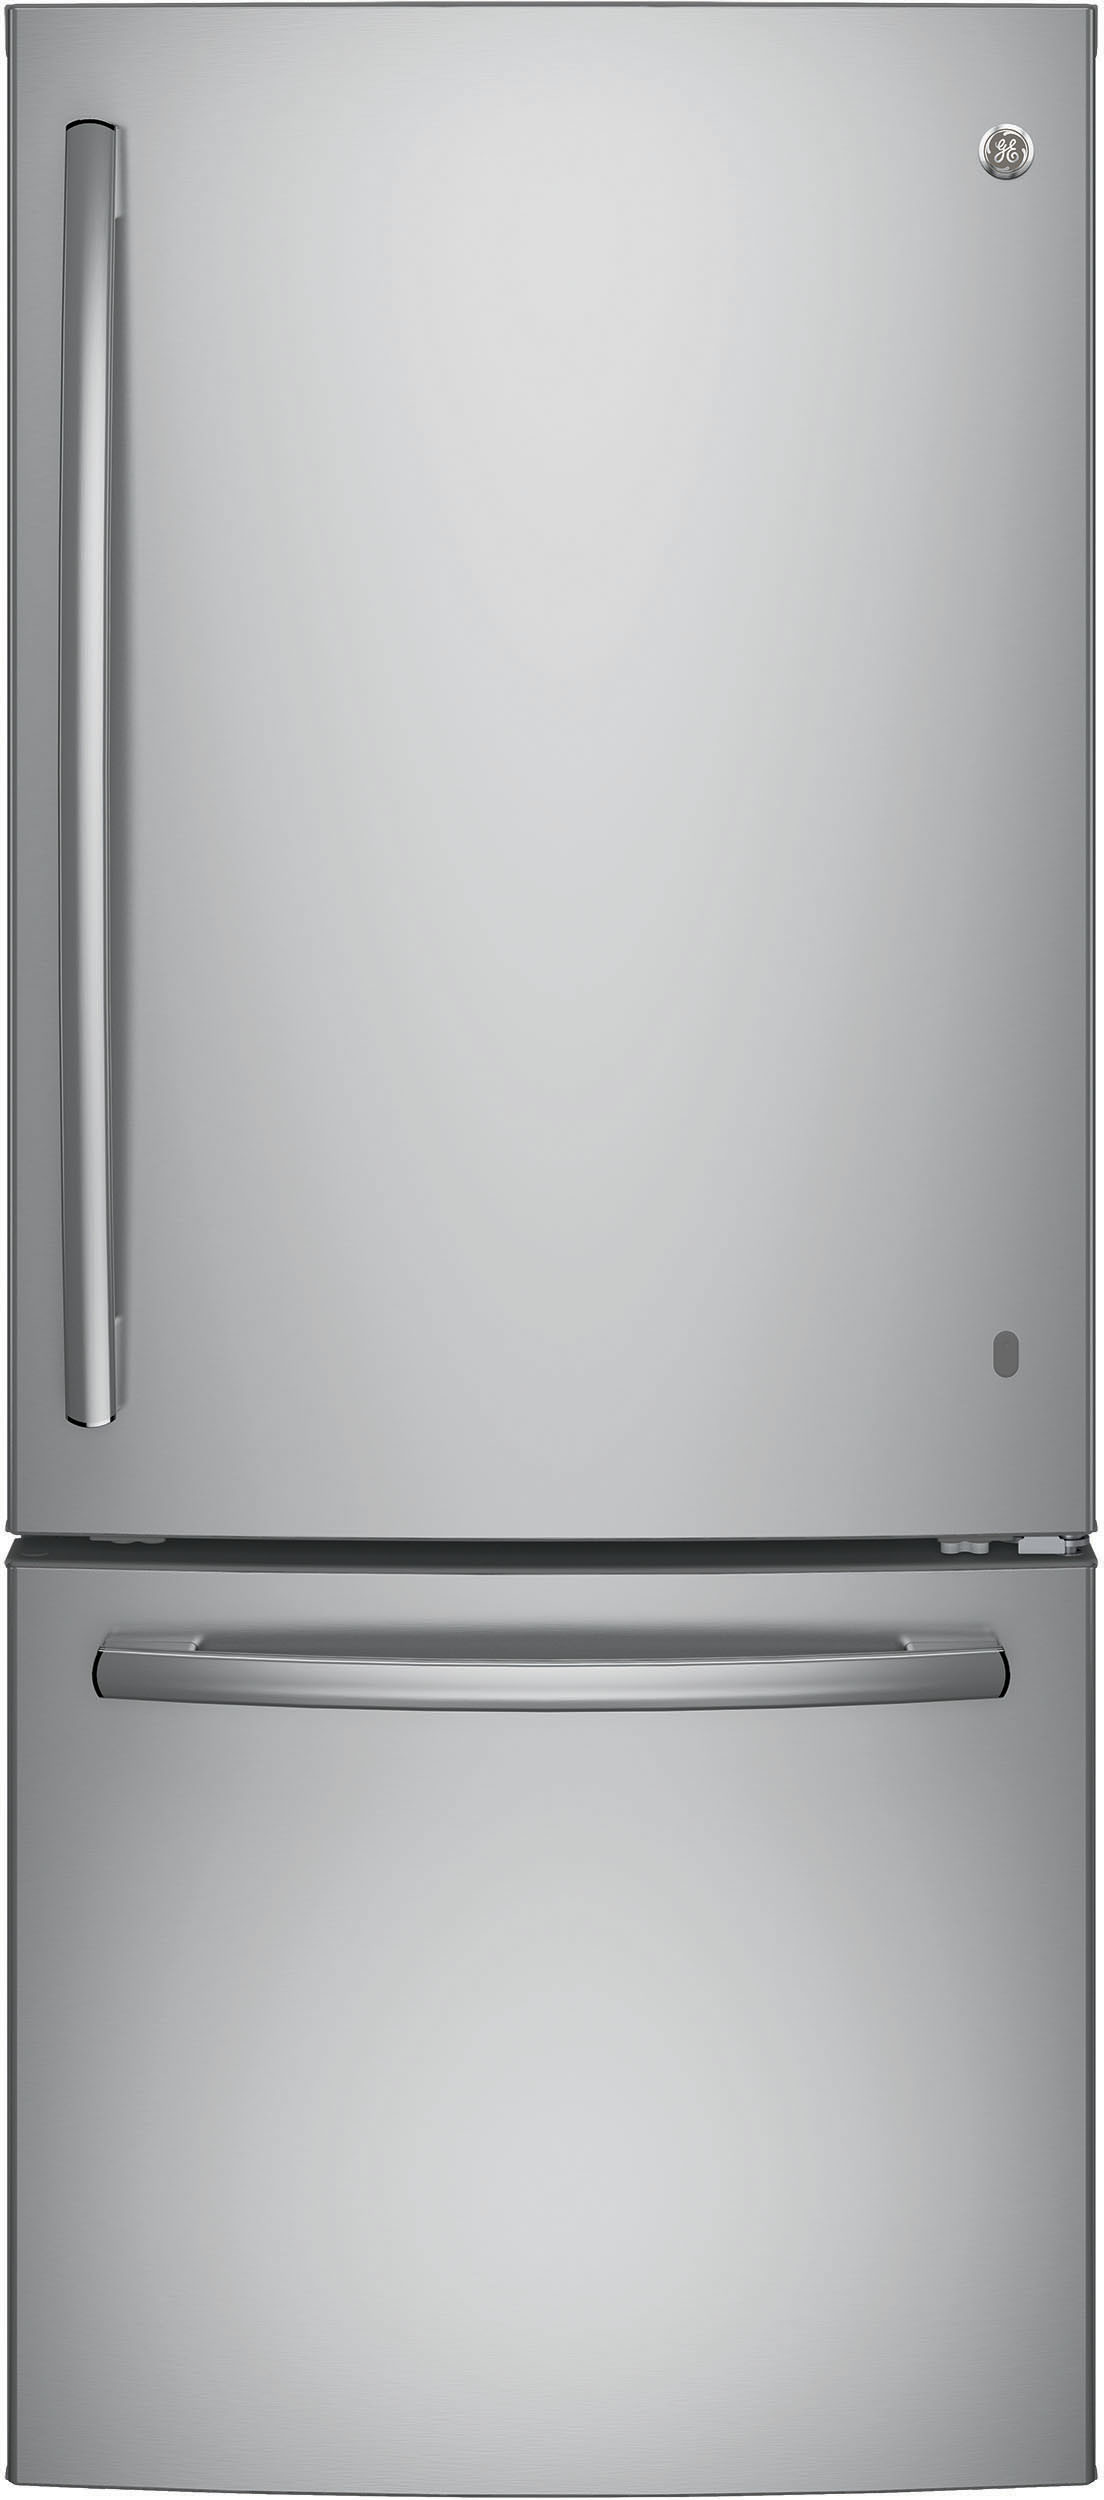 Ge Gbe21dskss 30 Inch Bottom Freezer Refrigerator With 20